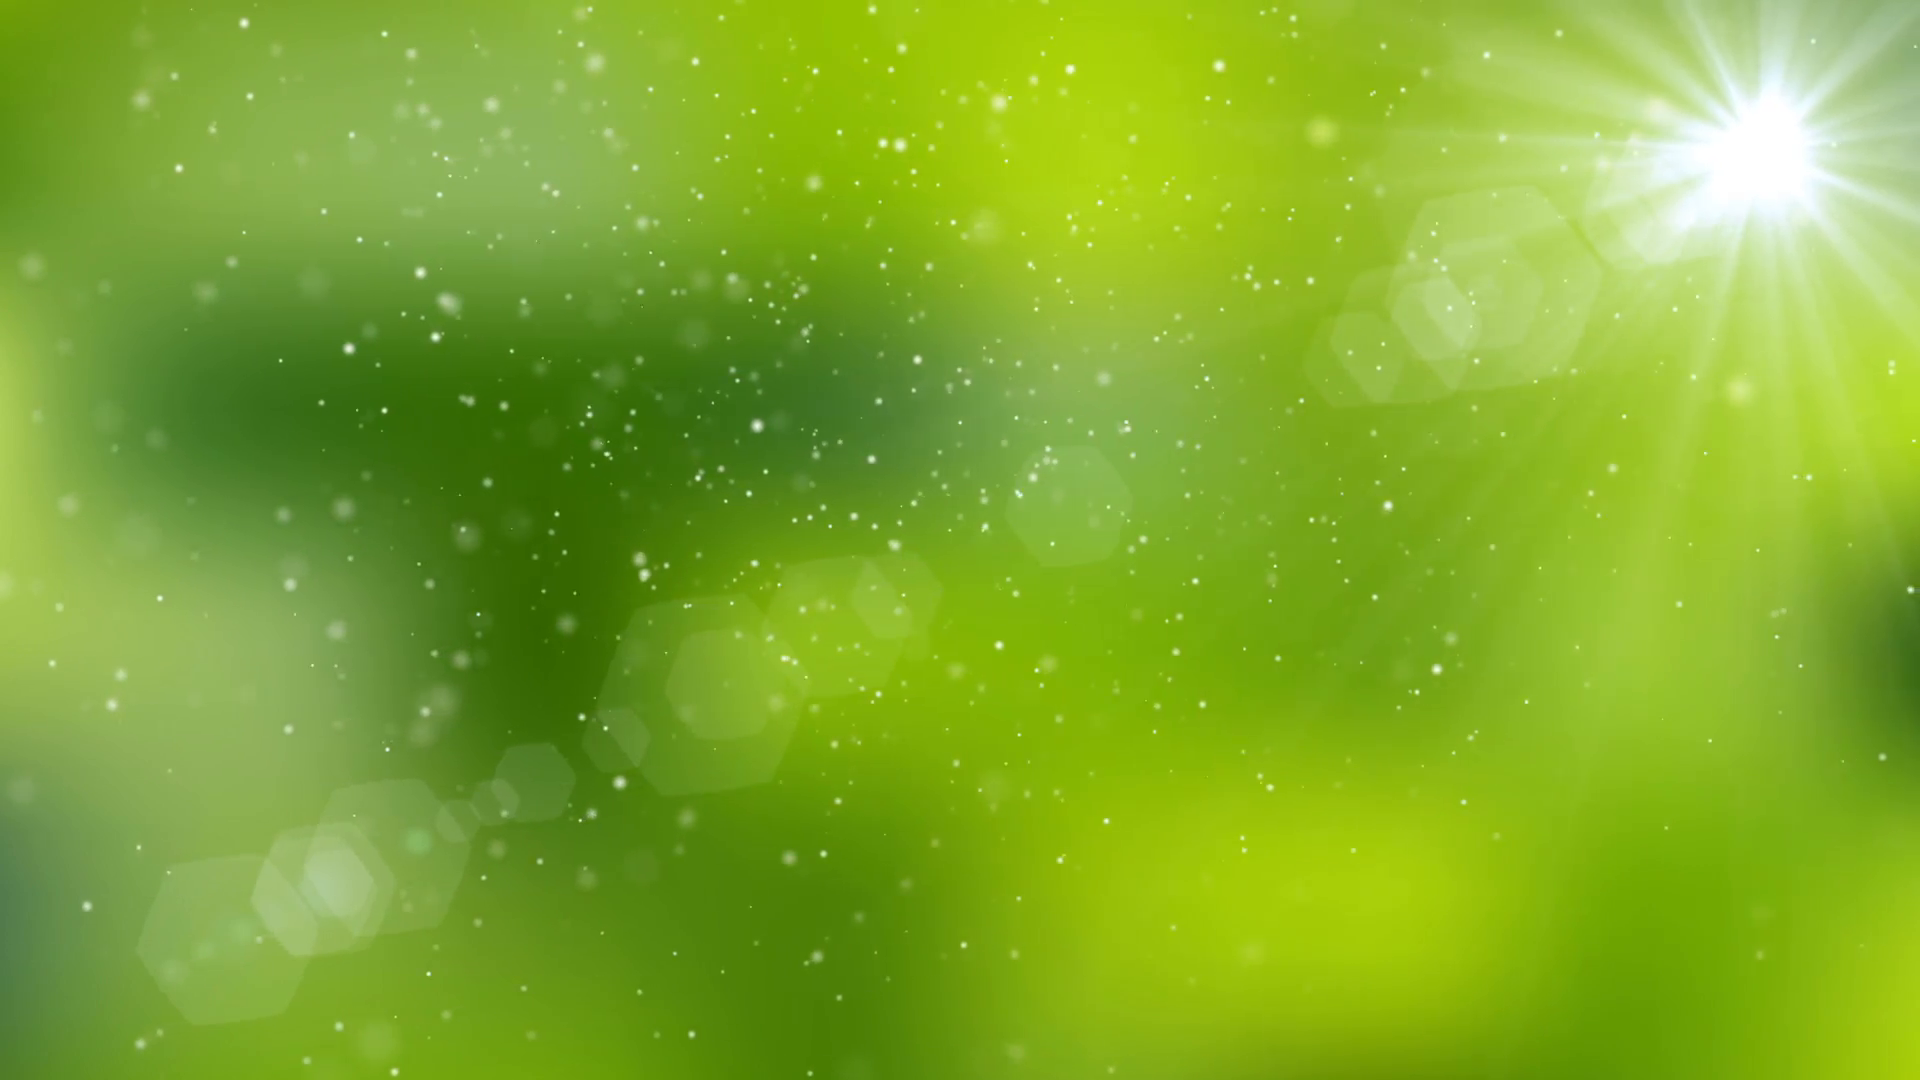 Png Nature Background Hd